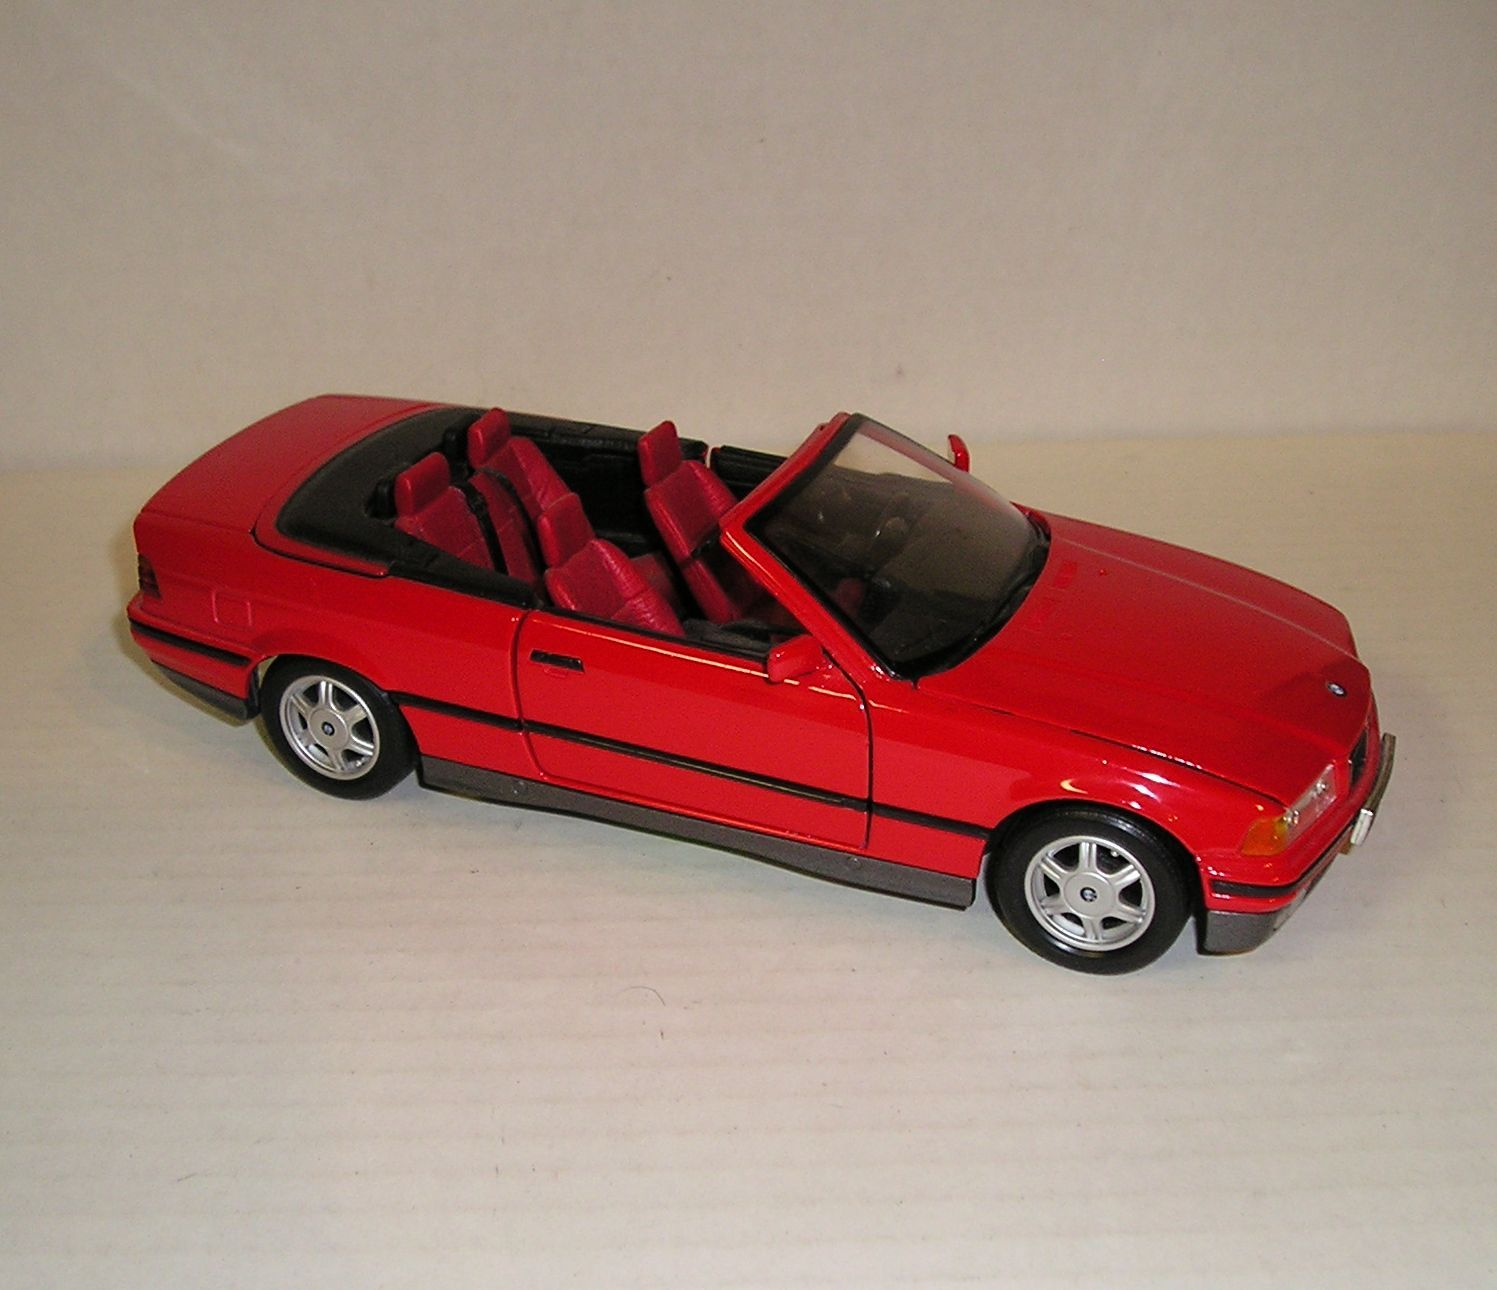 BMW 325i Convertible 1993 By MAISTO Red Diecast Car Model